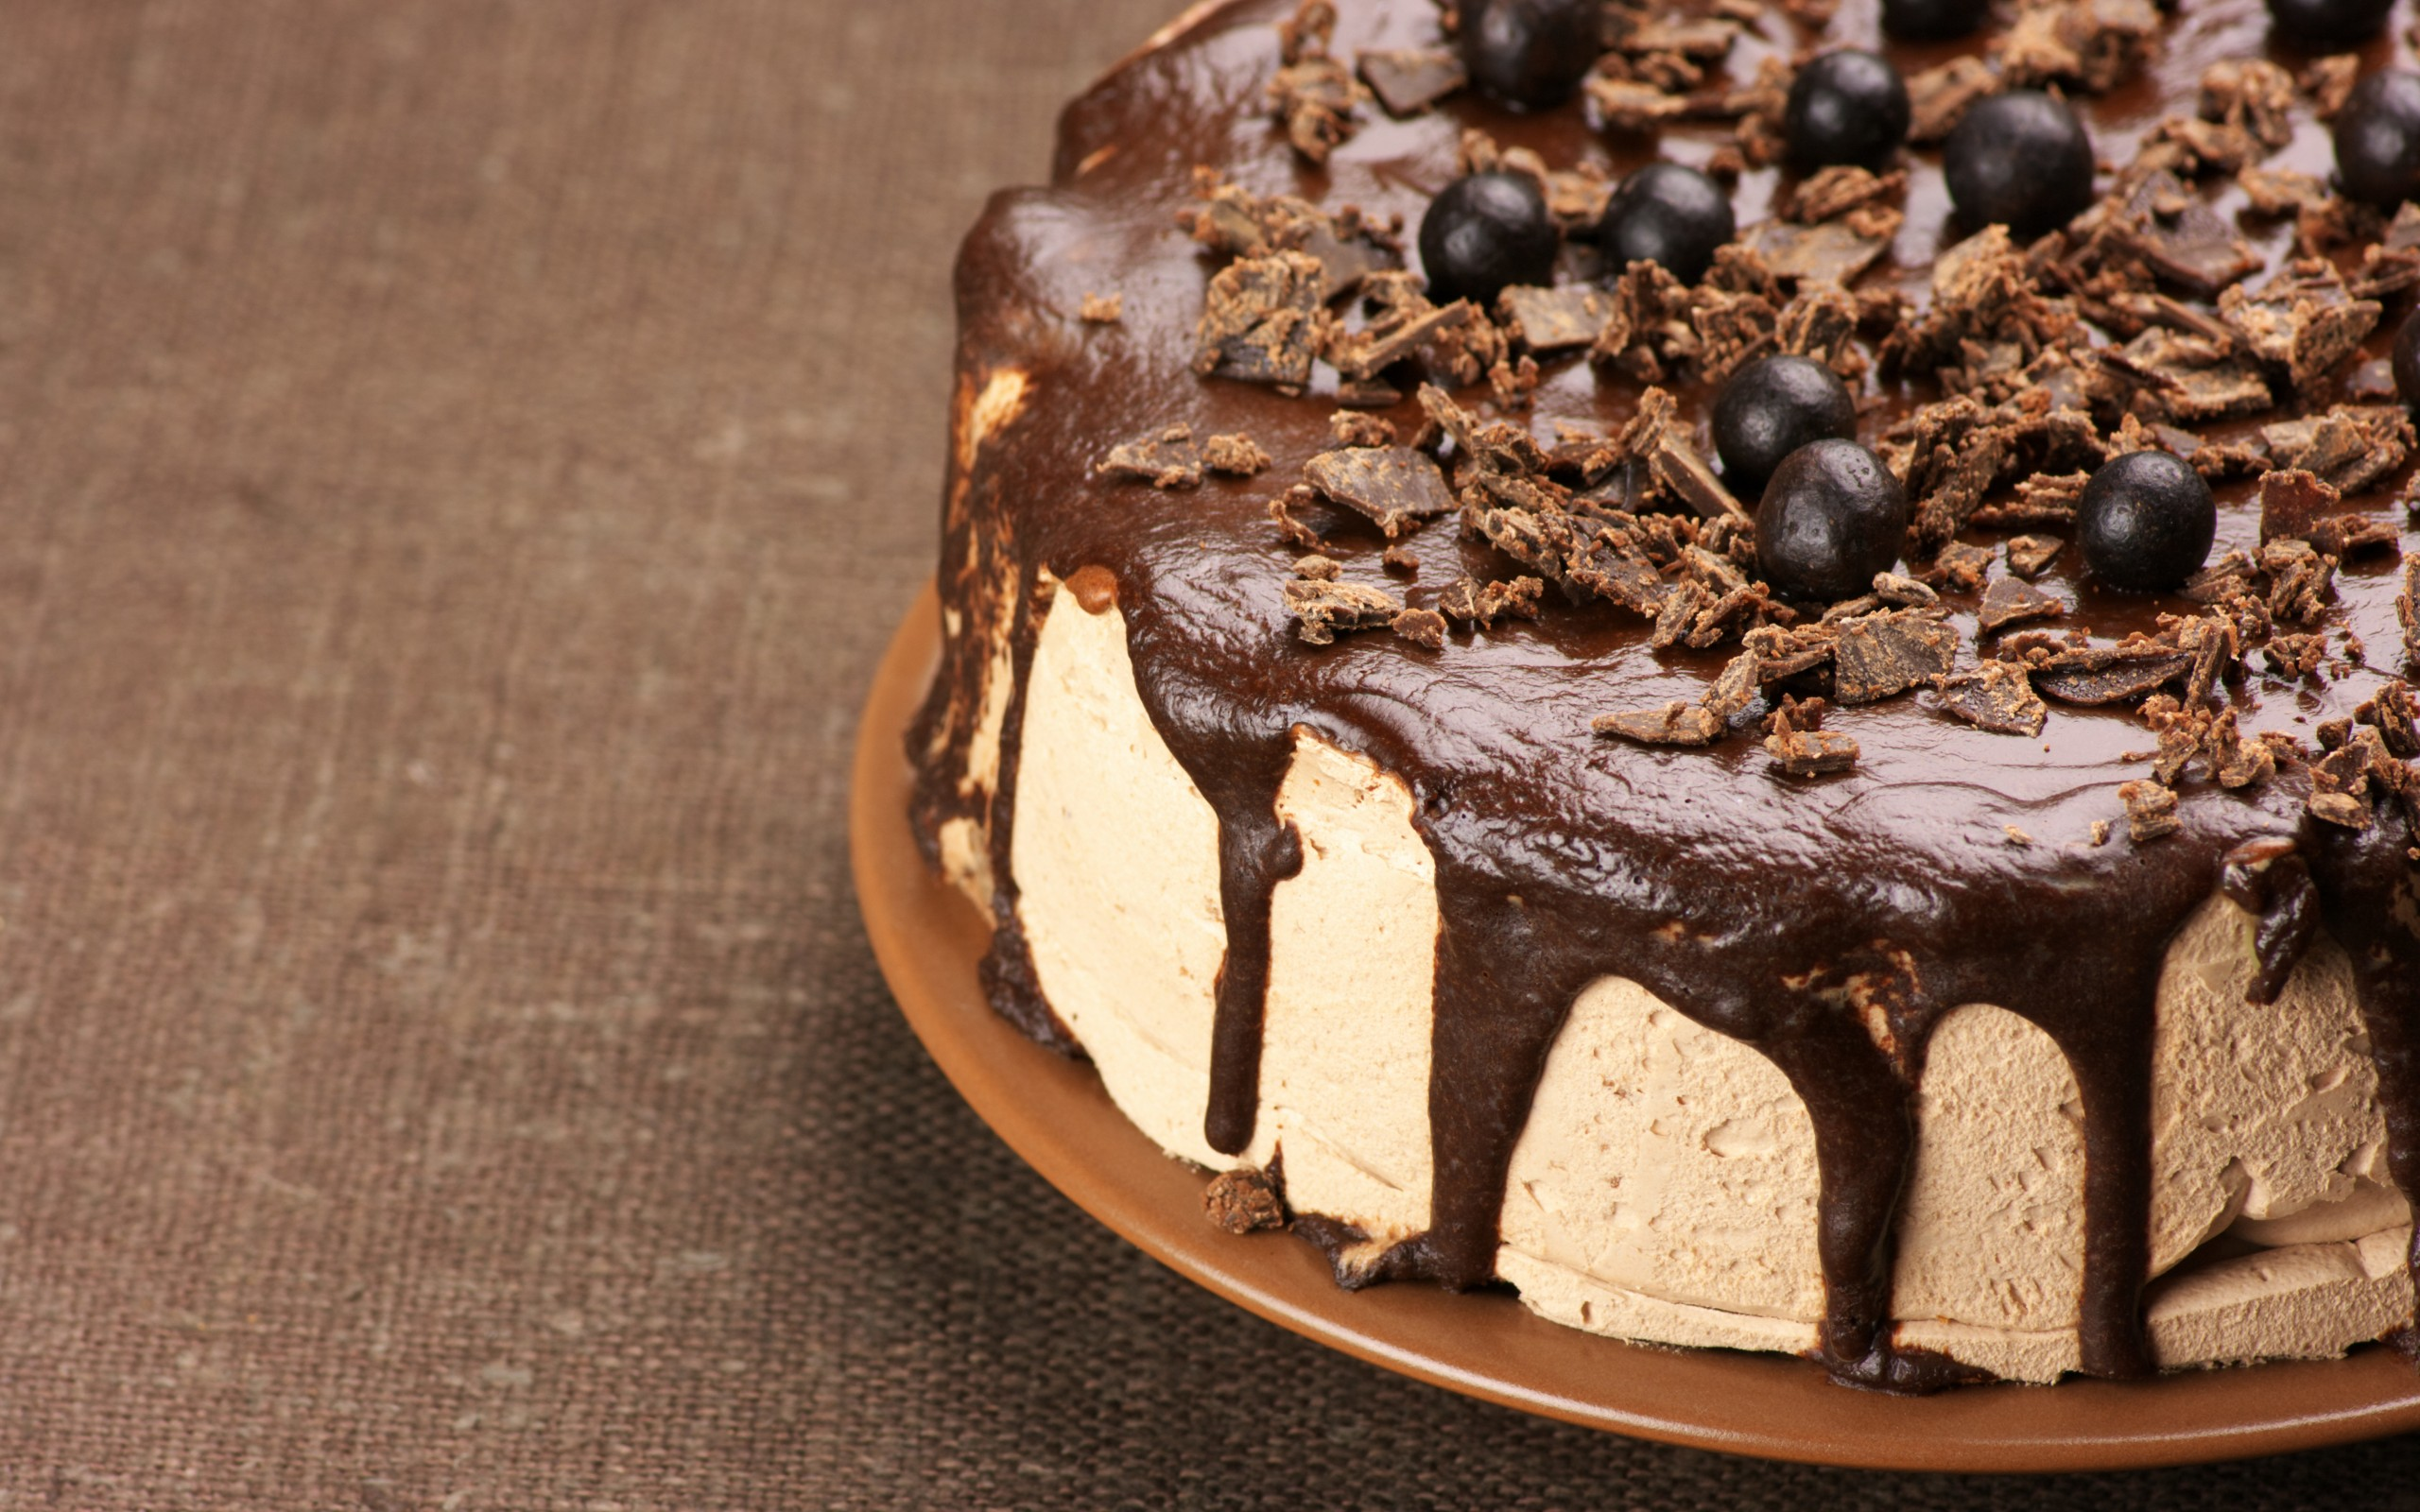 Cake Images In : Cake Full HD Wallpaper and Background 2560x1600 ID:404658